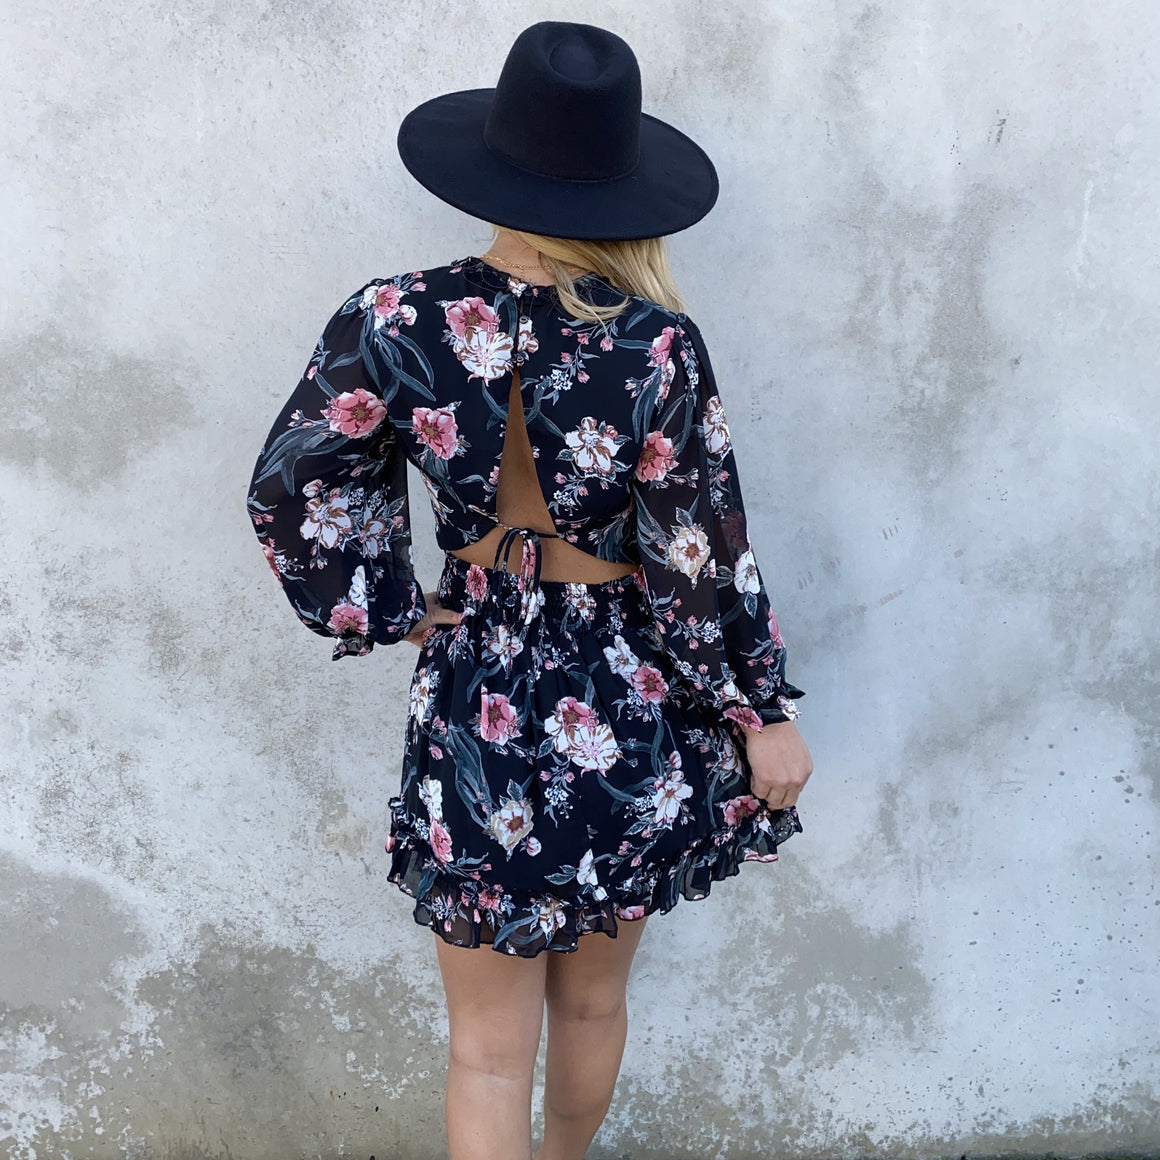 Secret Admirer Black Floral Dress - Dainty Hooligan